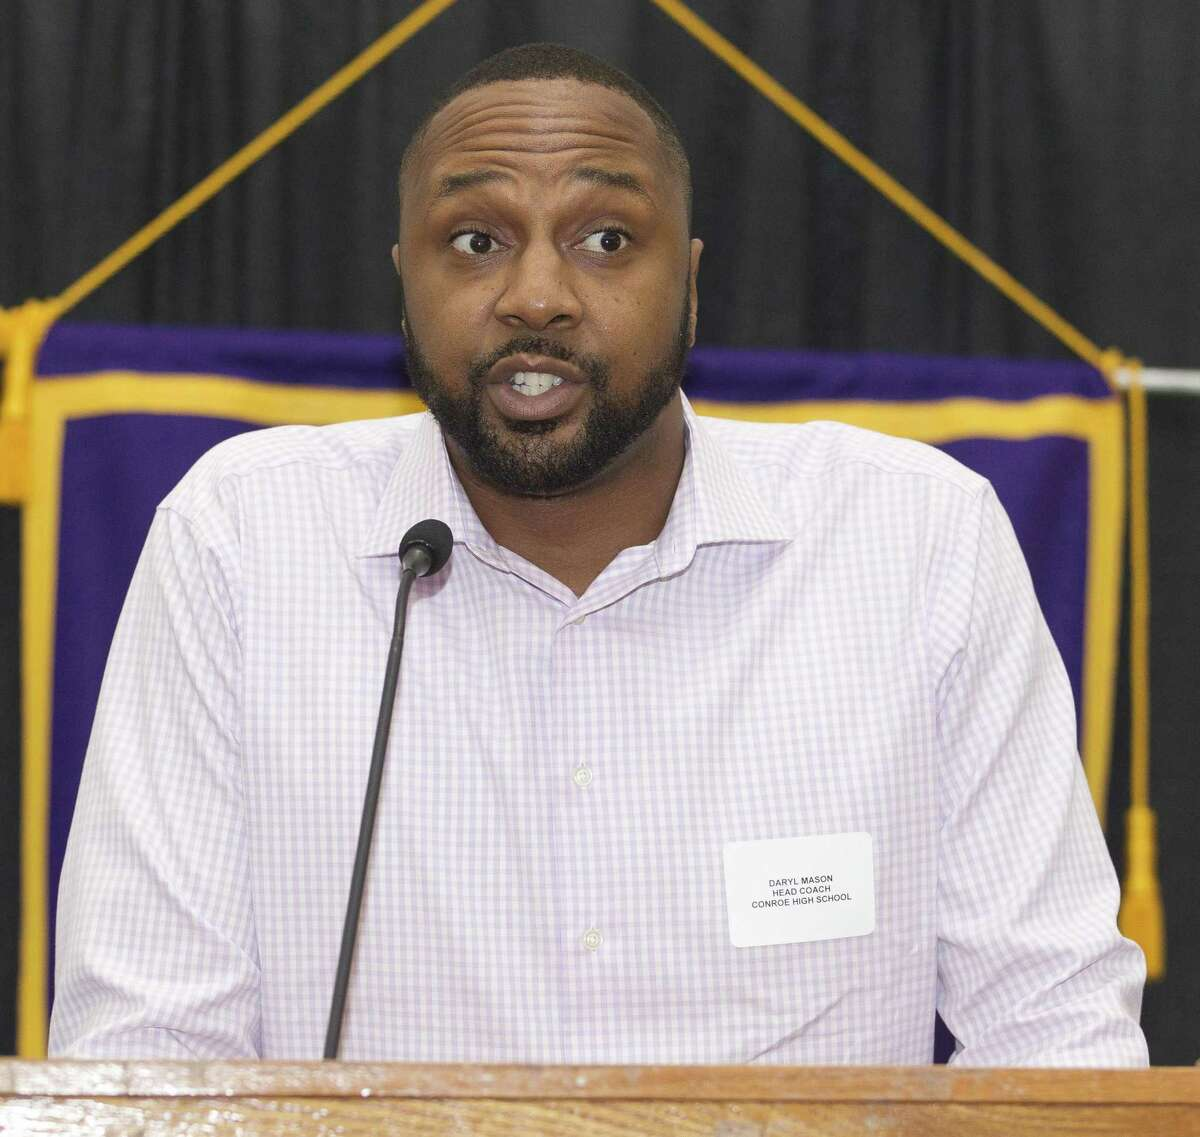 Conroe head coach Daryl Mason speaks during the Conroe Noon Lions Club?'s annual Roundball Roundup with area boys basketball coaches at the Lone Star Convention & Expo Center, Wednesday, Nov. 28 2018, in Conroe.